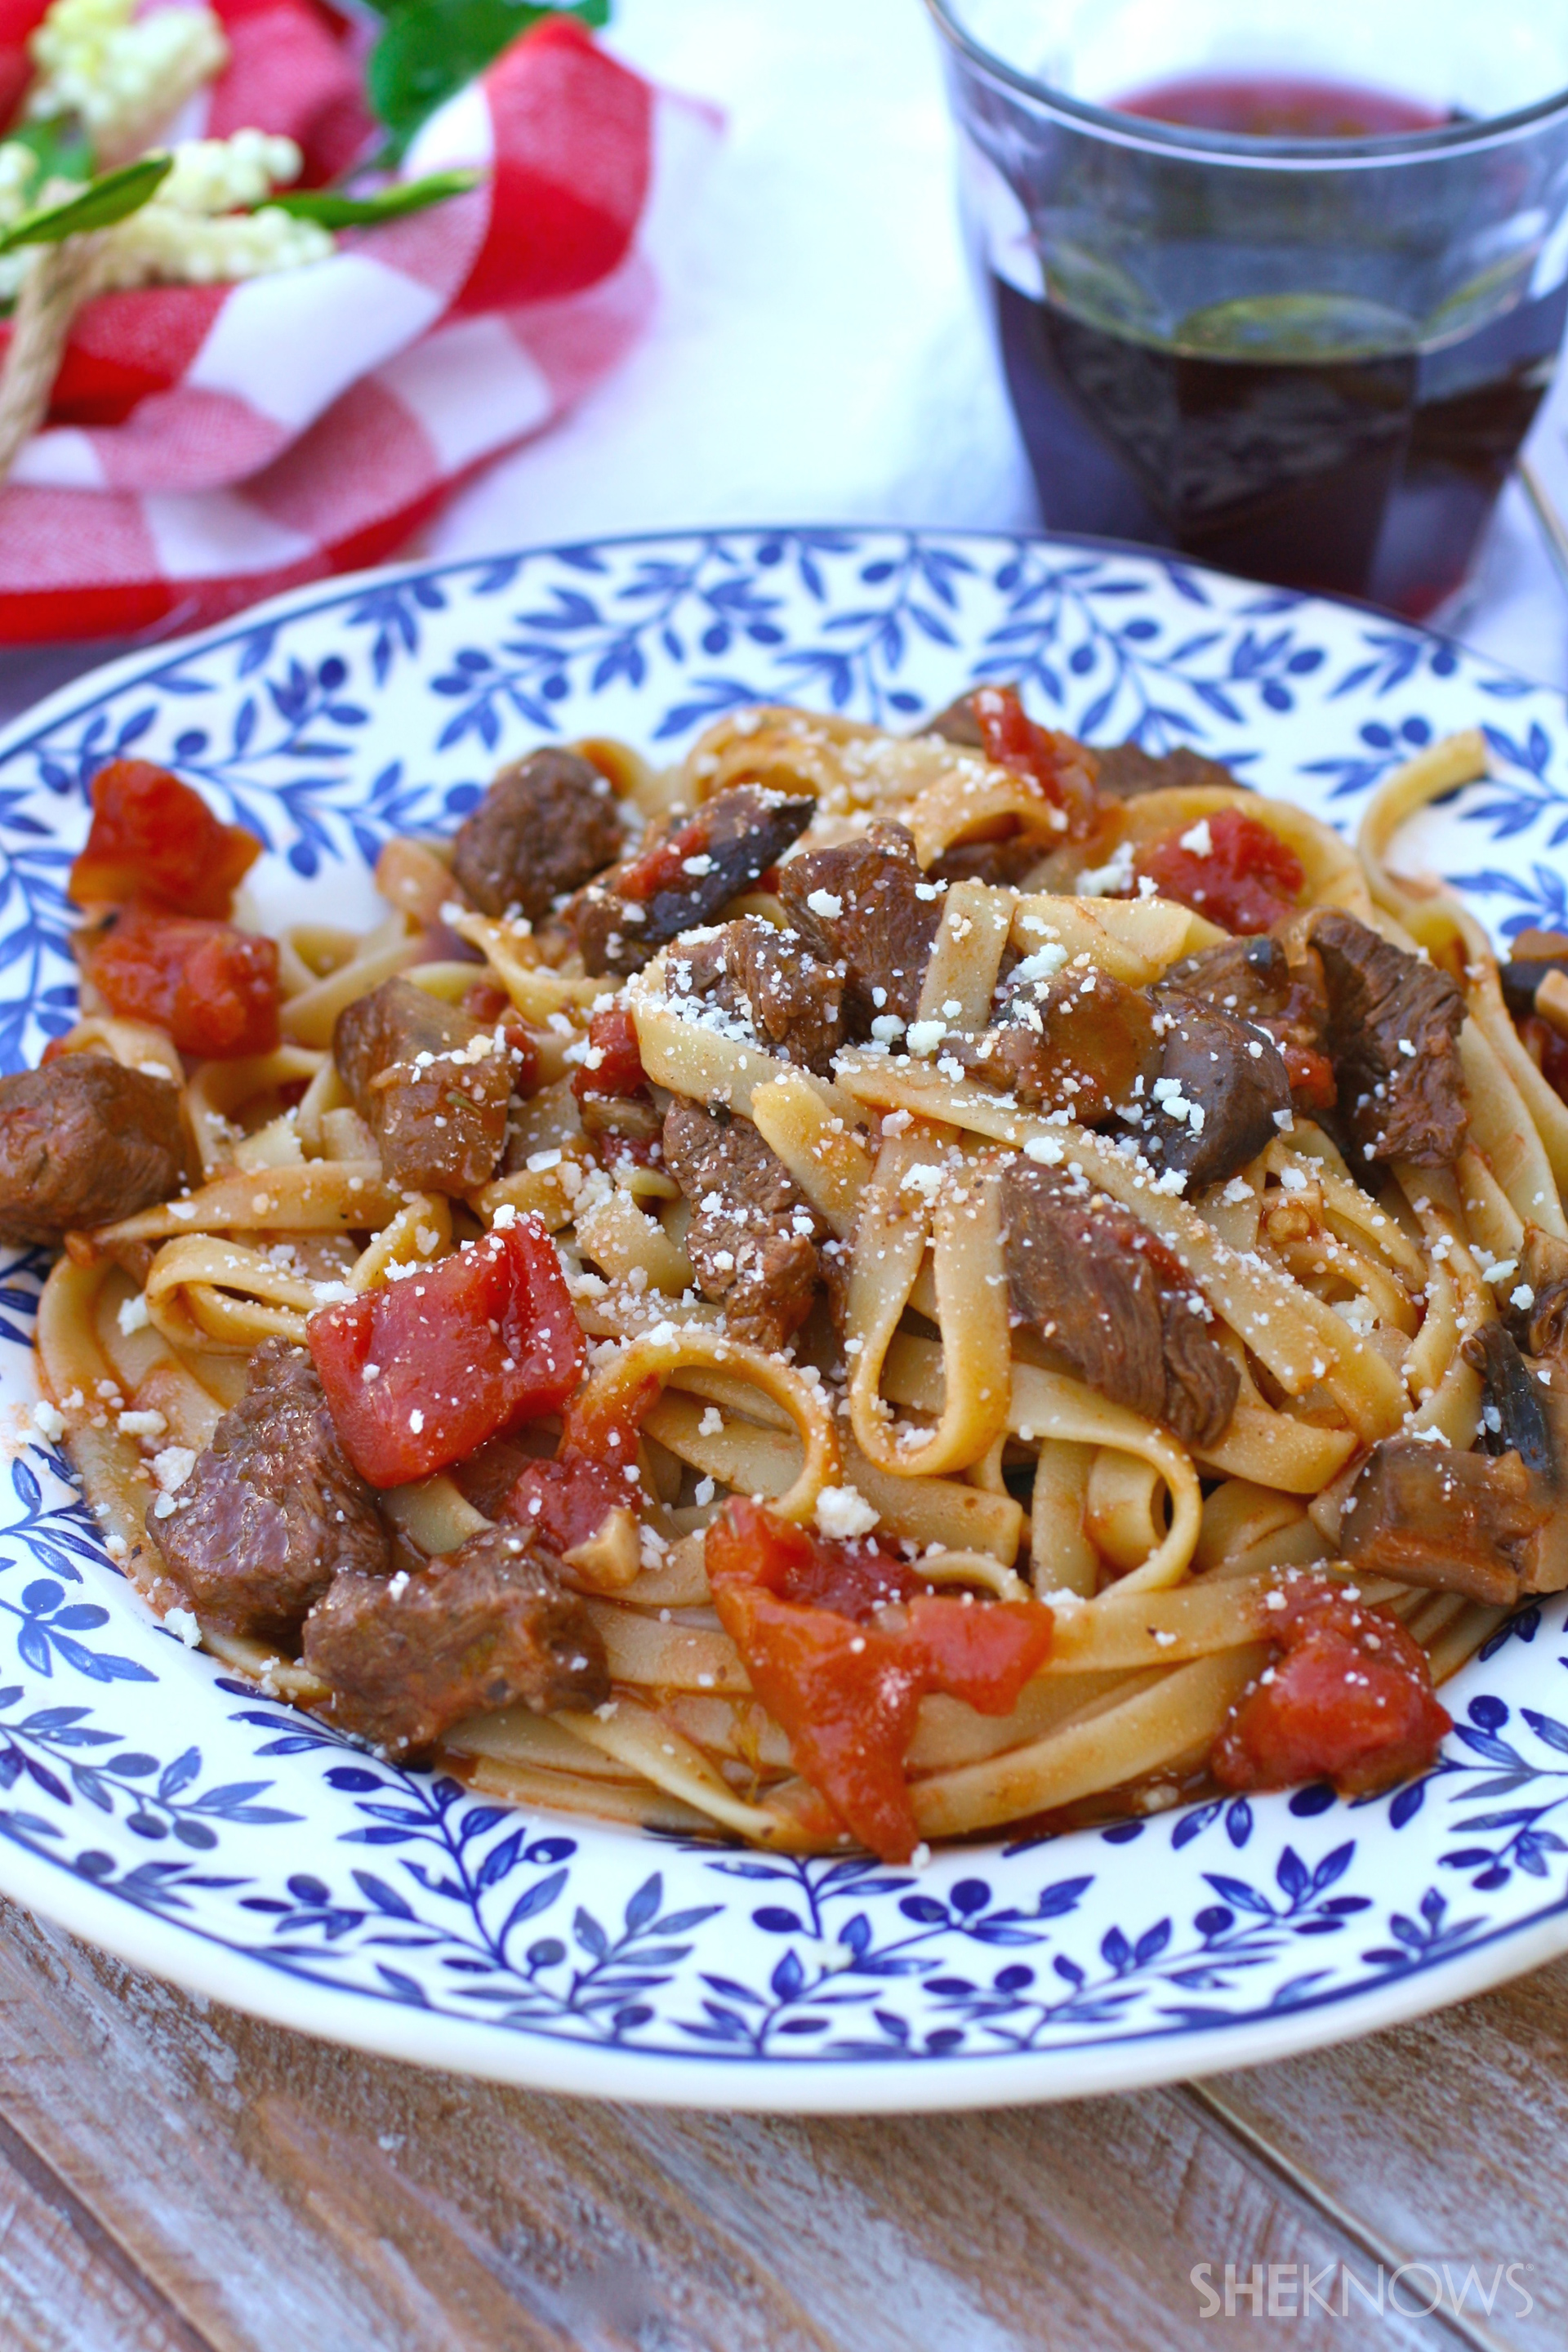 Sunday dinner: Hearty pasta with beef ragu